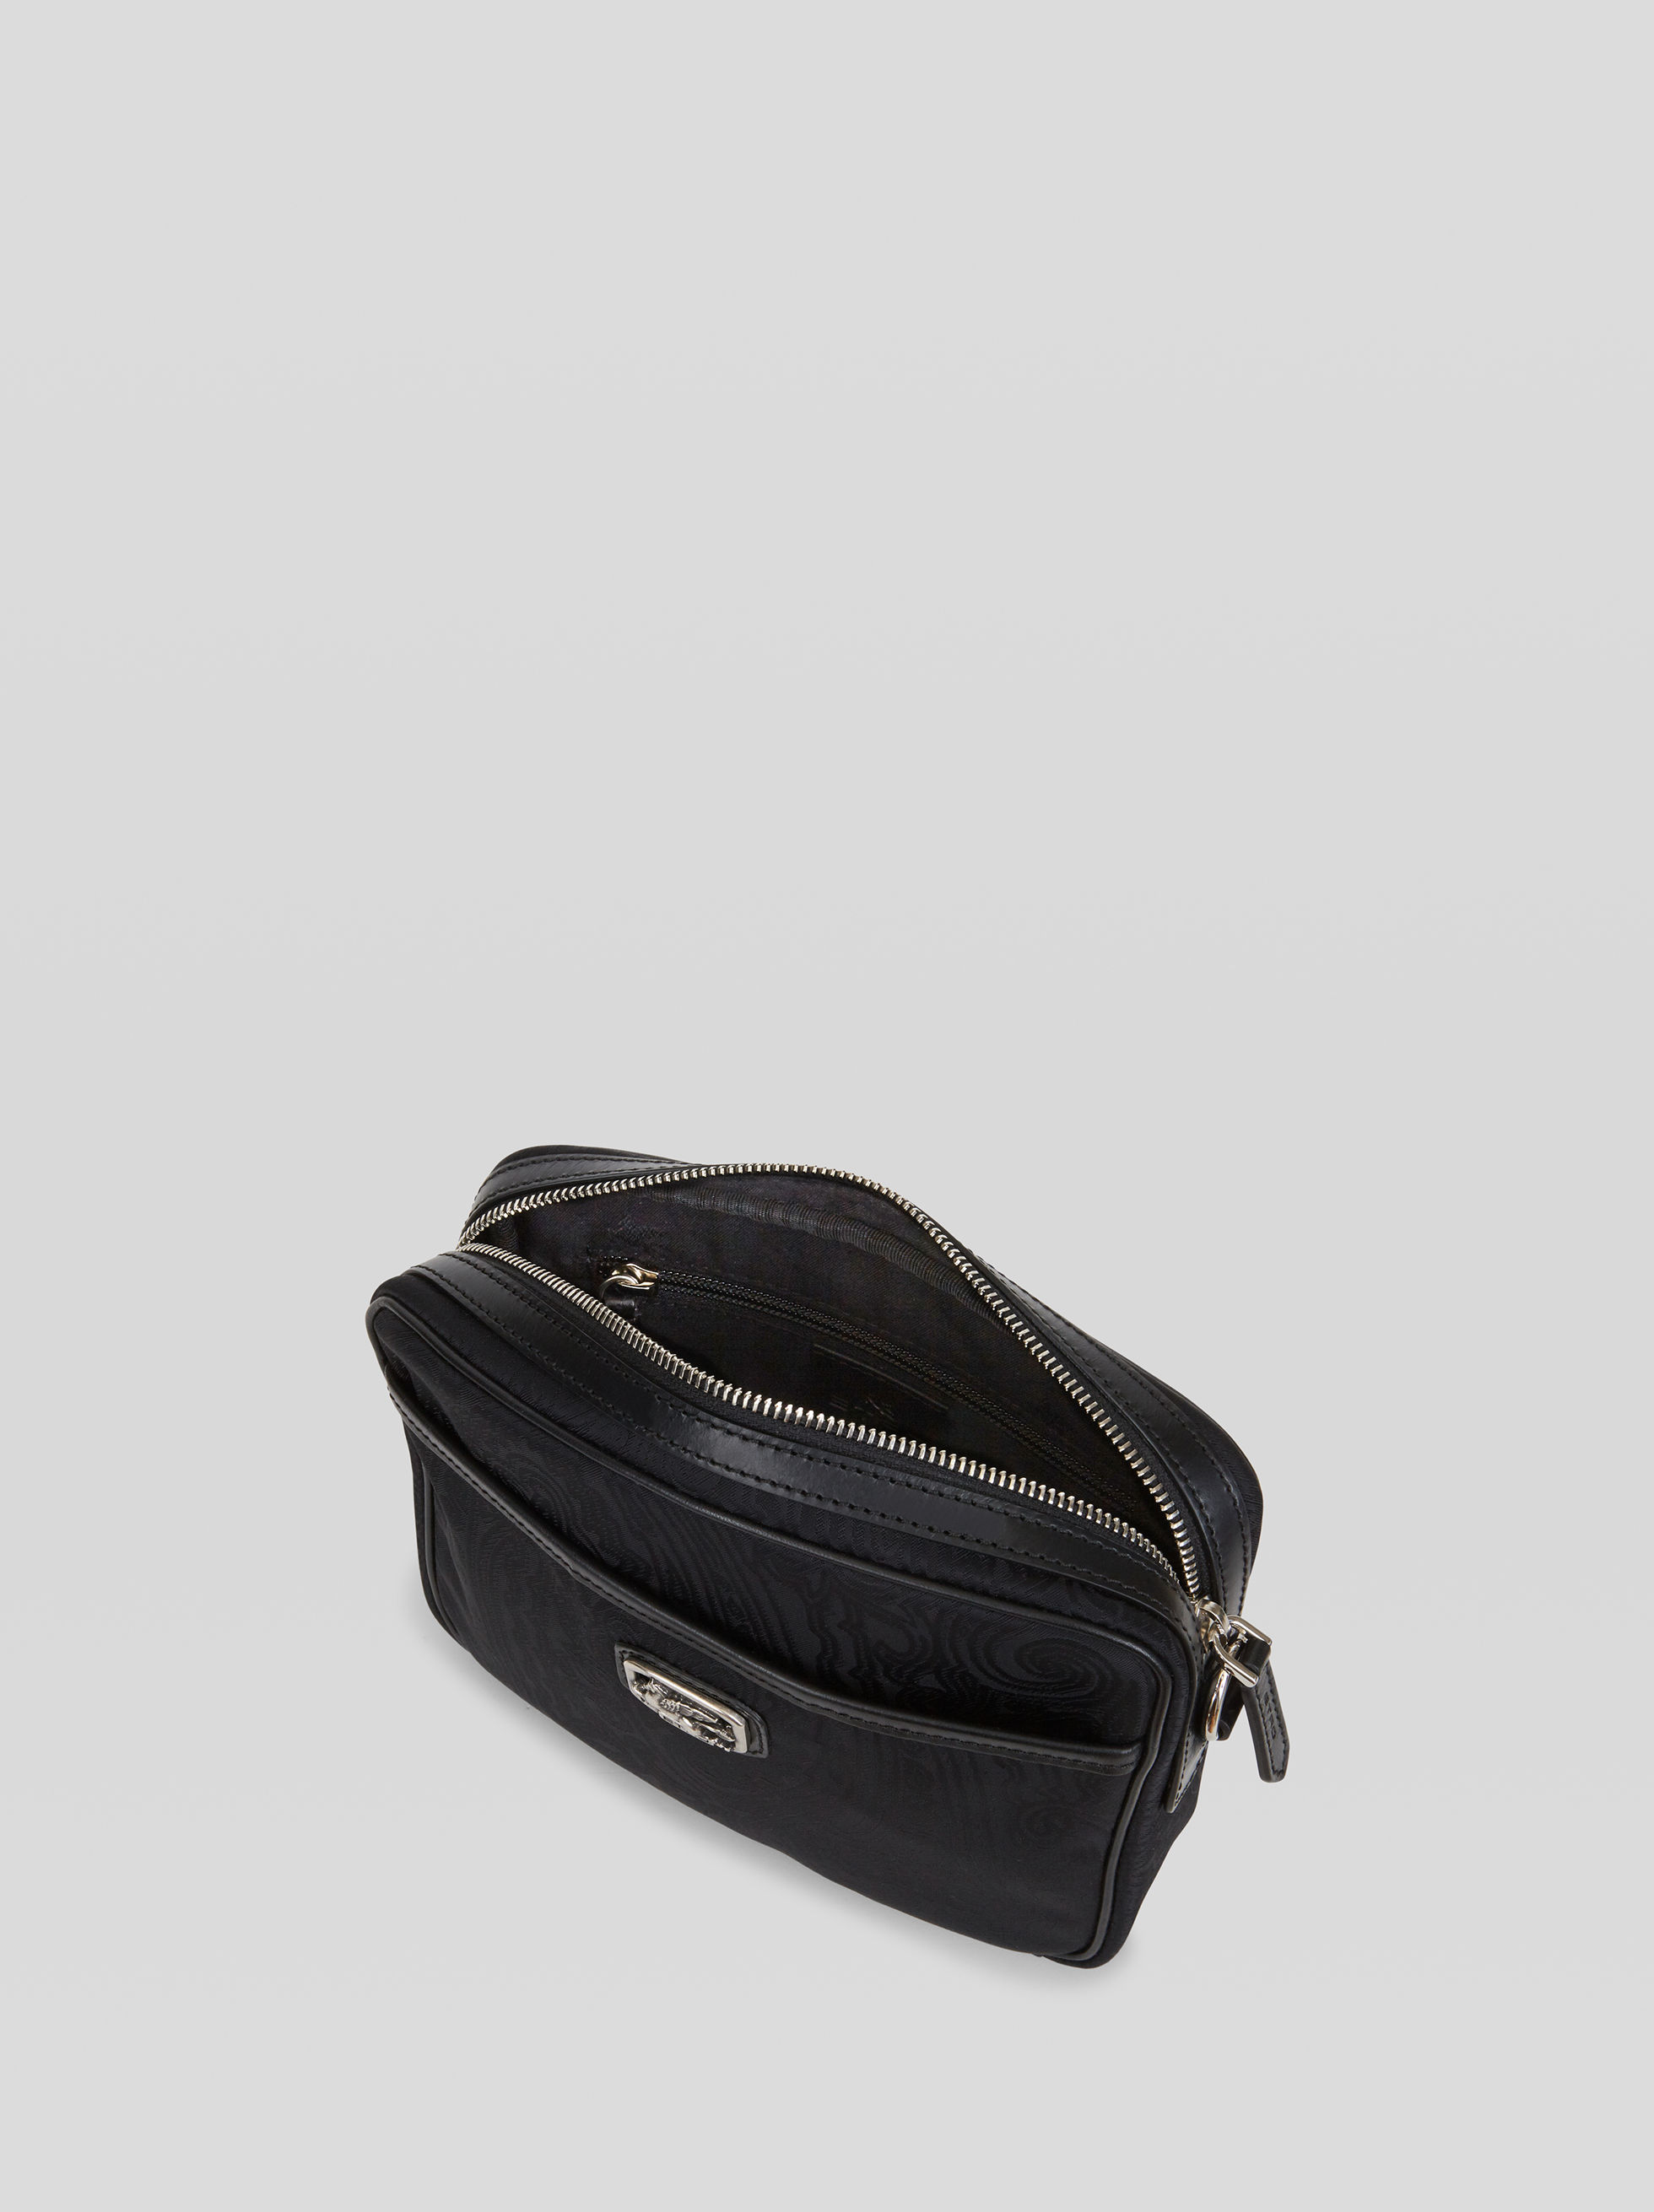 NYLON JACQUARD SHOULDER BAG WITH PEGASO